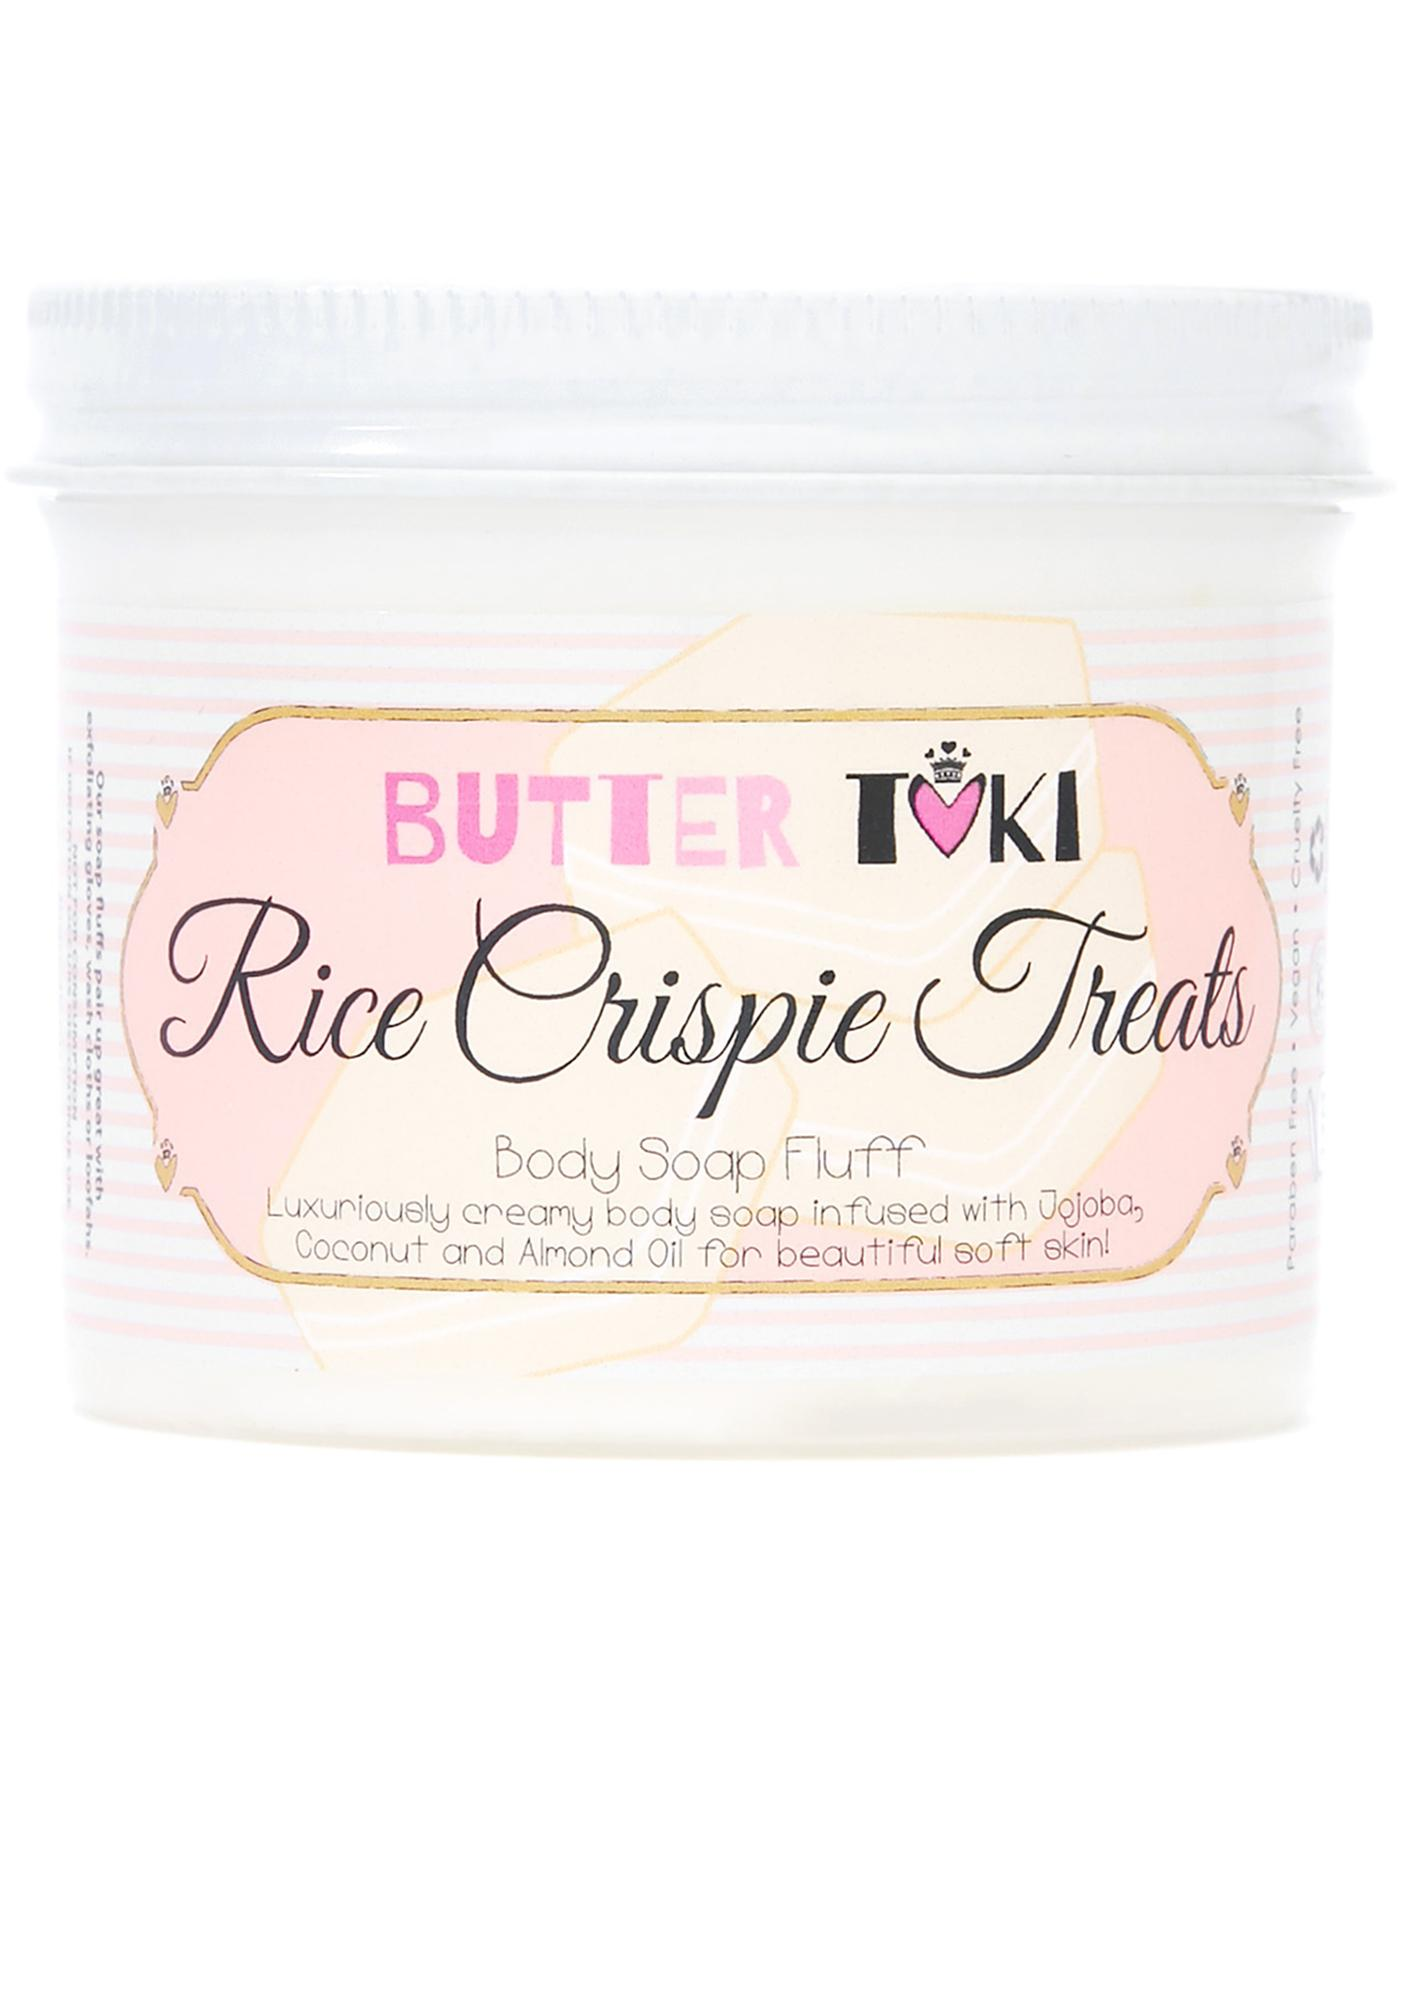 Butter Toki Rice Crispie Treats Soap Fluff